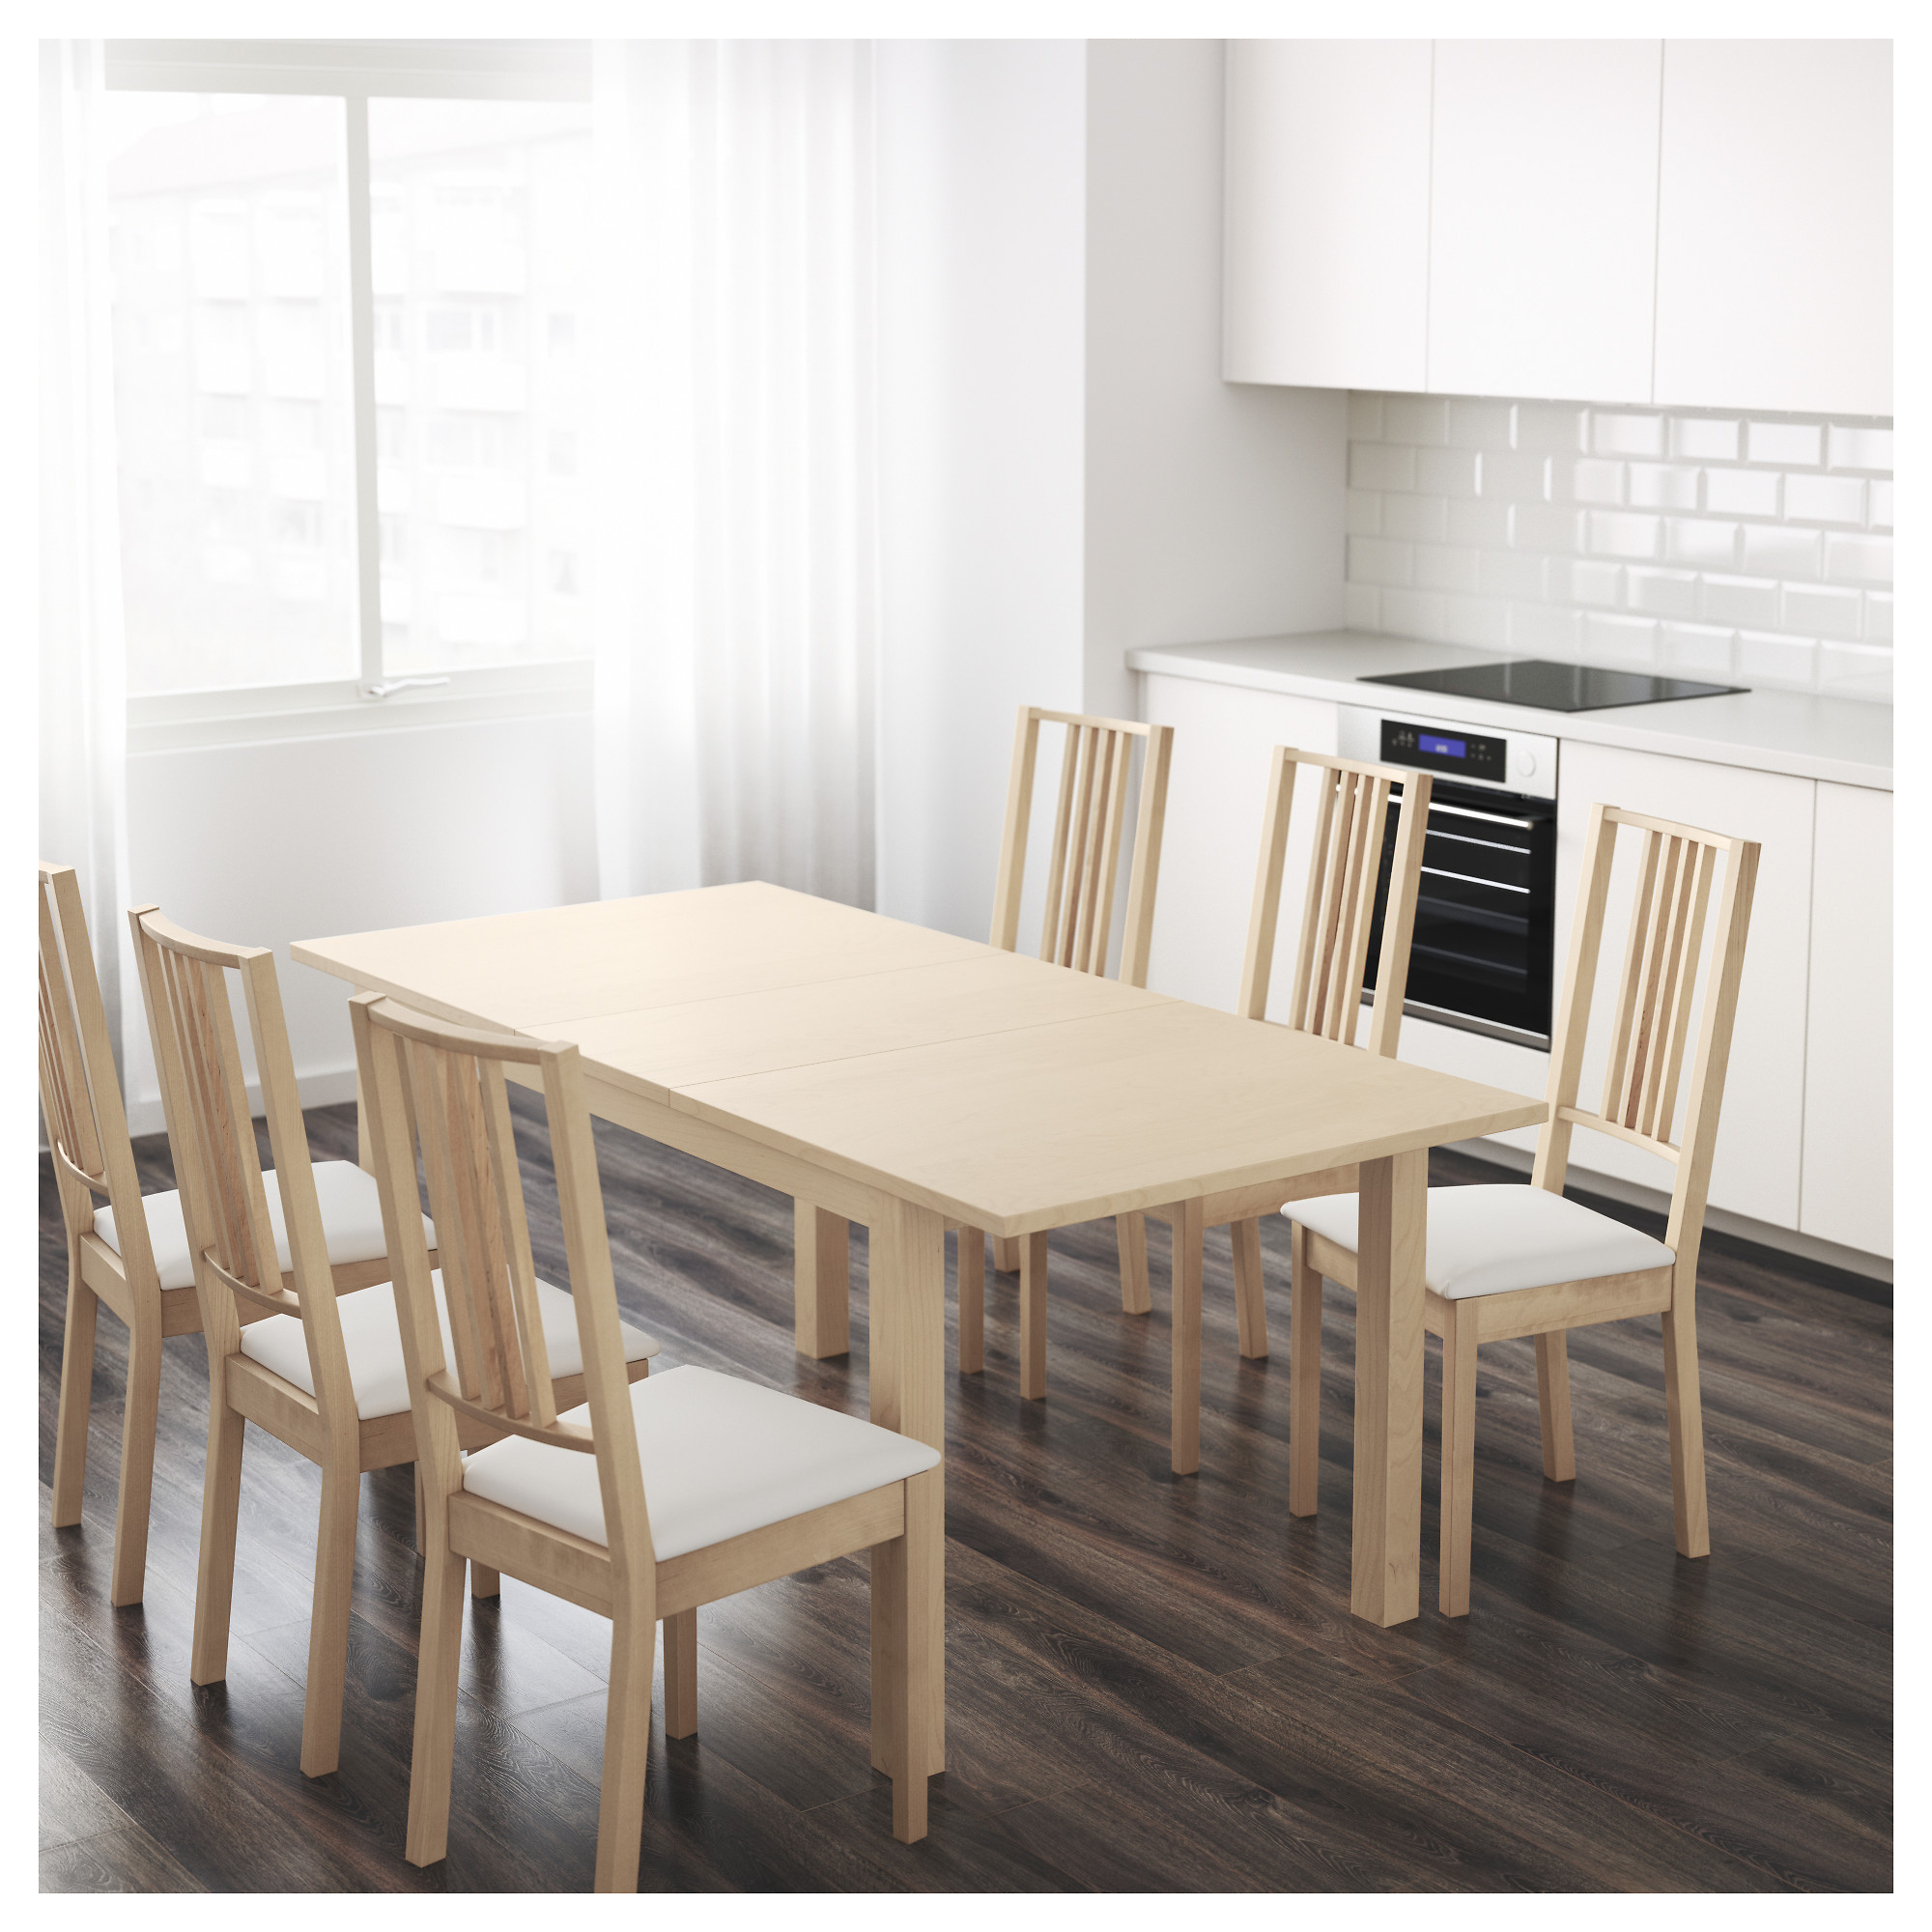 Extending Dining Room Table Endearing Bjursta Extendable Table  Brown  Ikea Inspiration Design